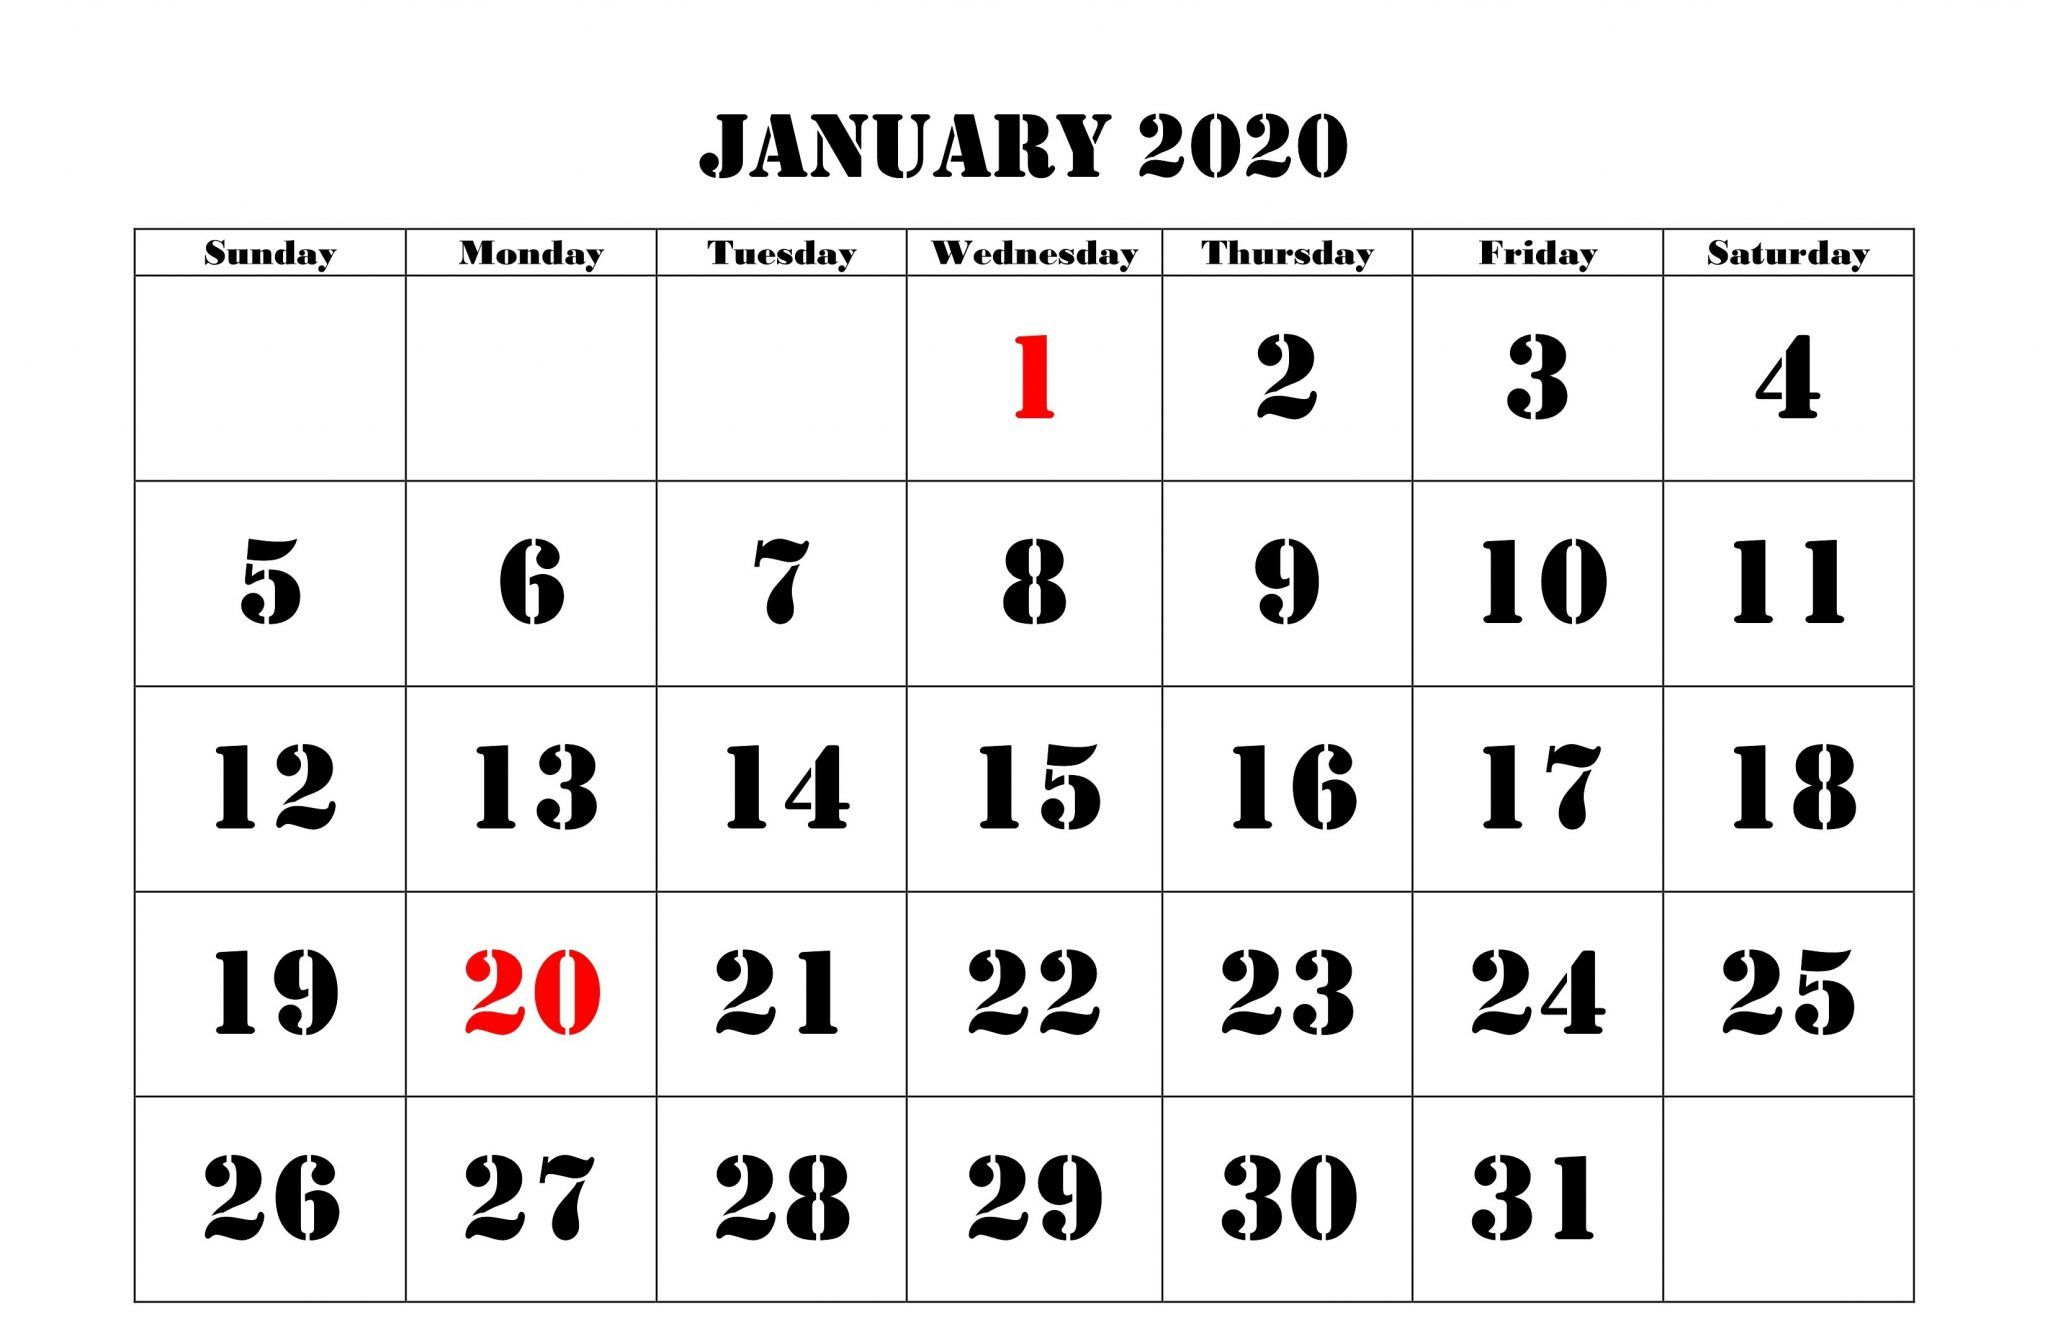 2020 January Holidays Calendar Printable Templates (With